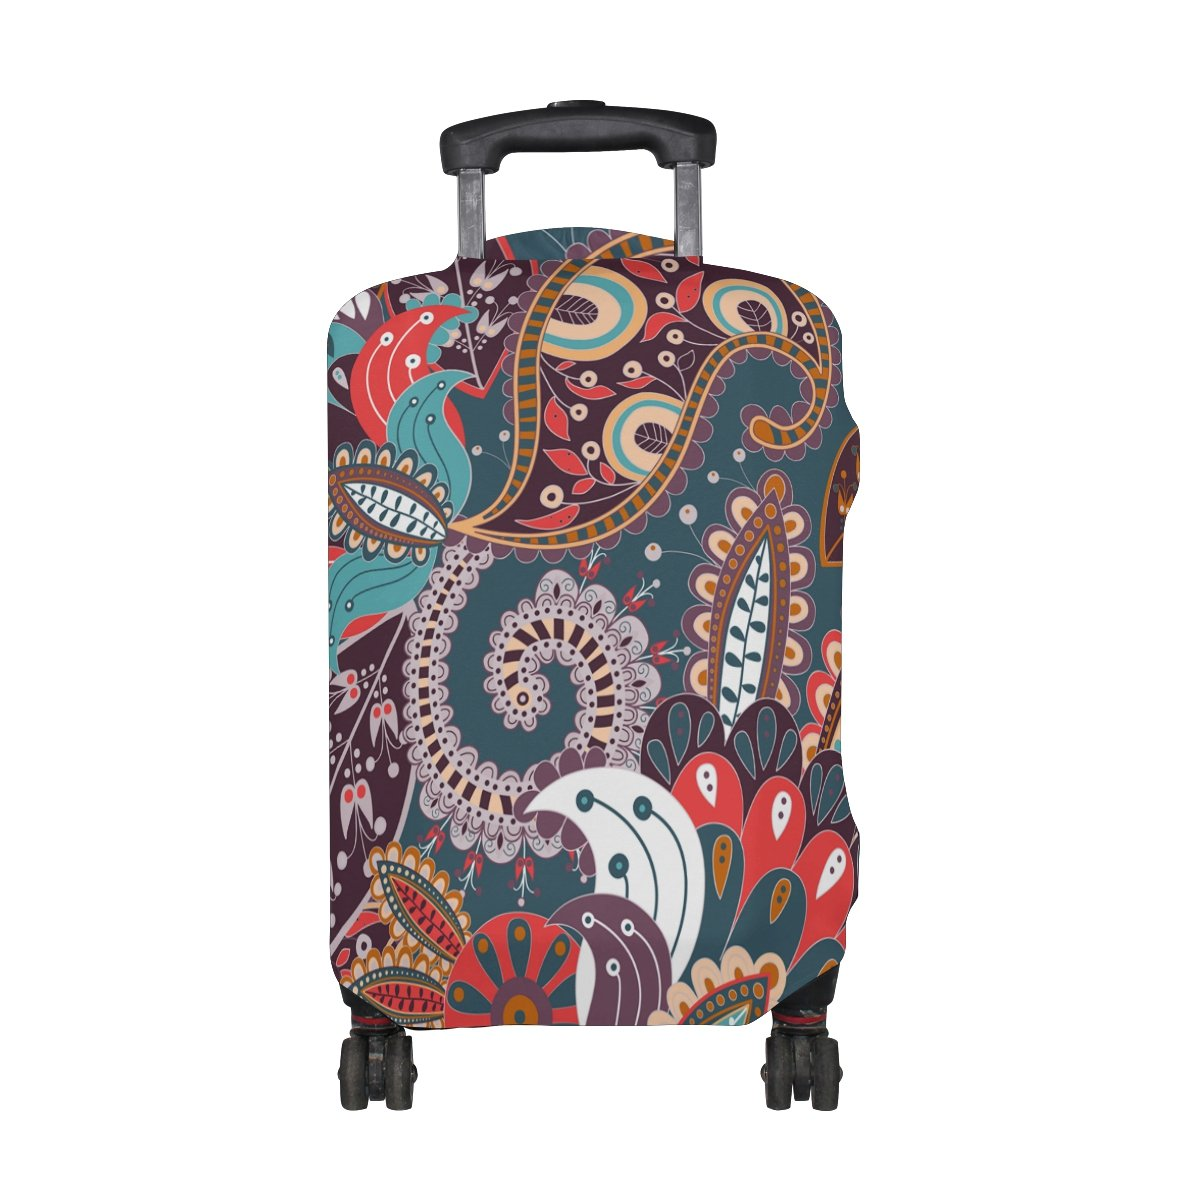 Bohemian Hippie Print Travel Luggage Protector Baggage Suitcase Cover Fits 29-32 Inch Luggage by CoolPrintAll (Image #2)